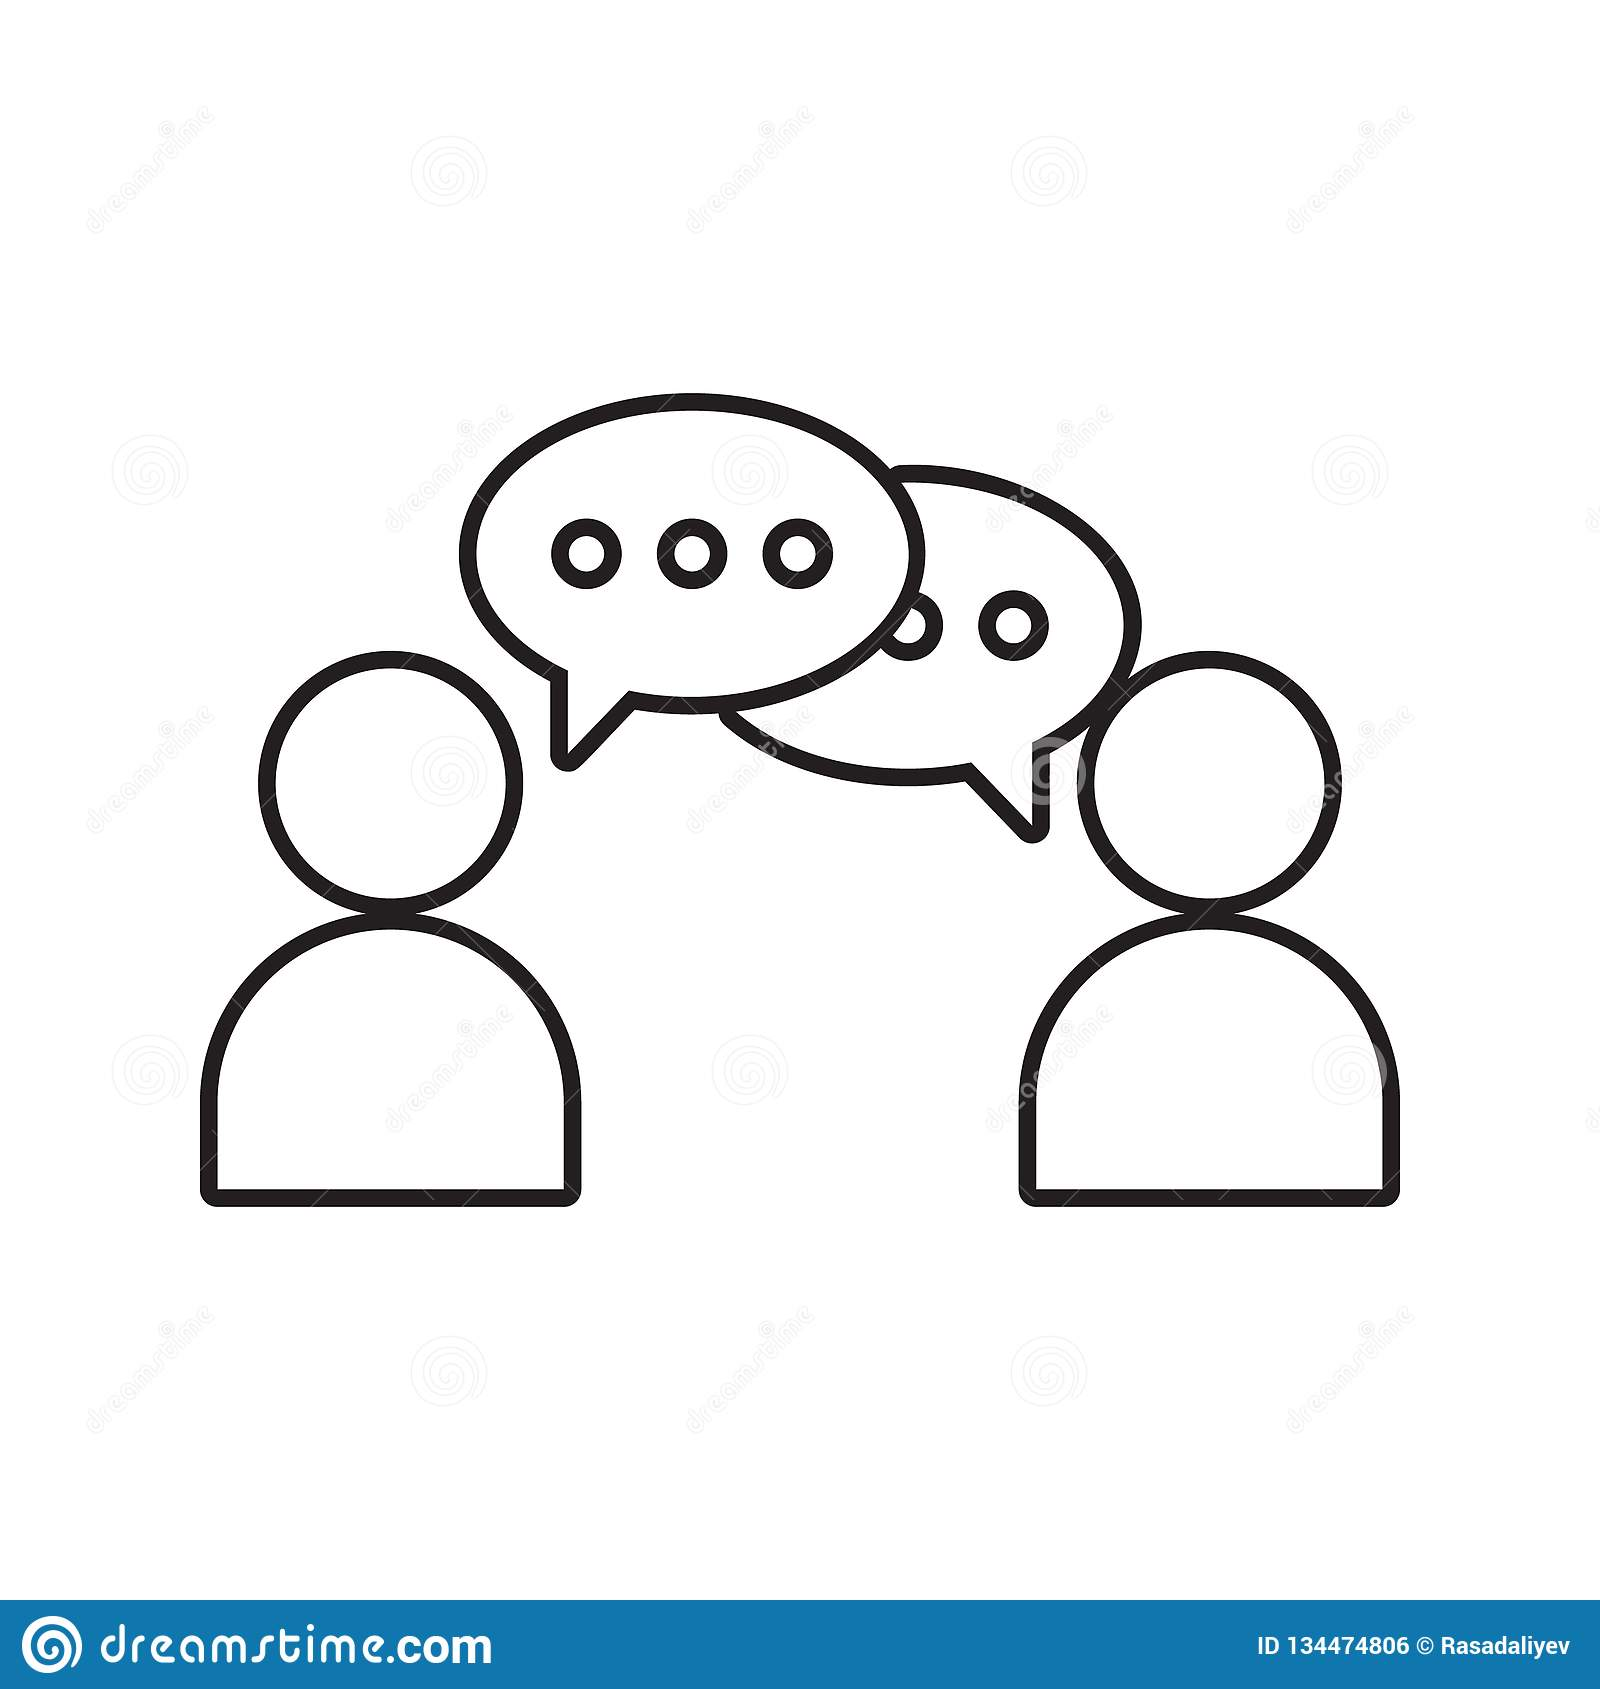 Communication between two people icon. Element of cyber security for mobile concept and web apps icon. Thin line icon for website. Design and development, app stock illustration